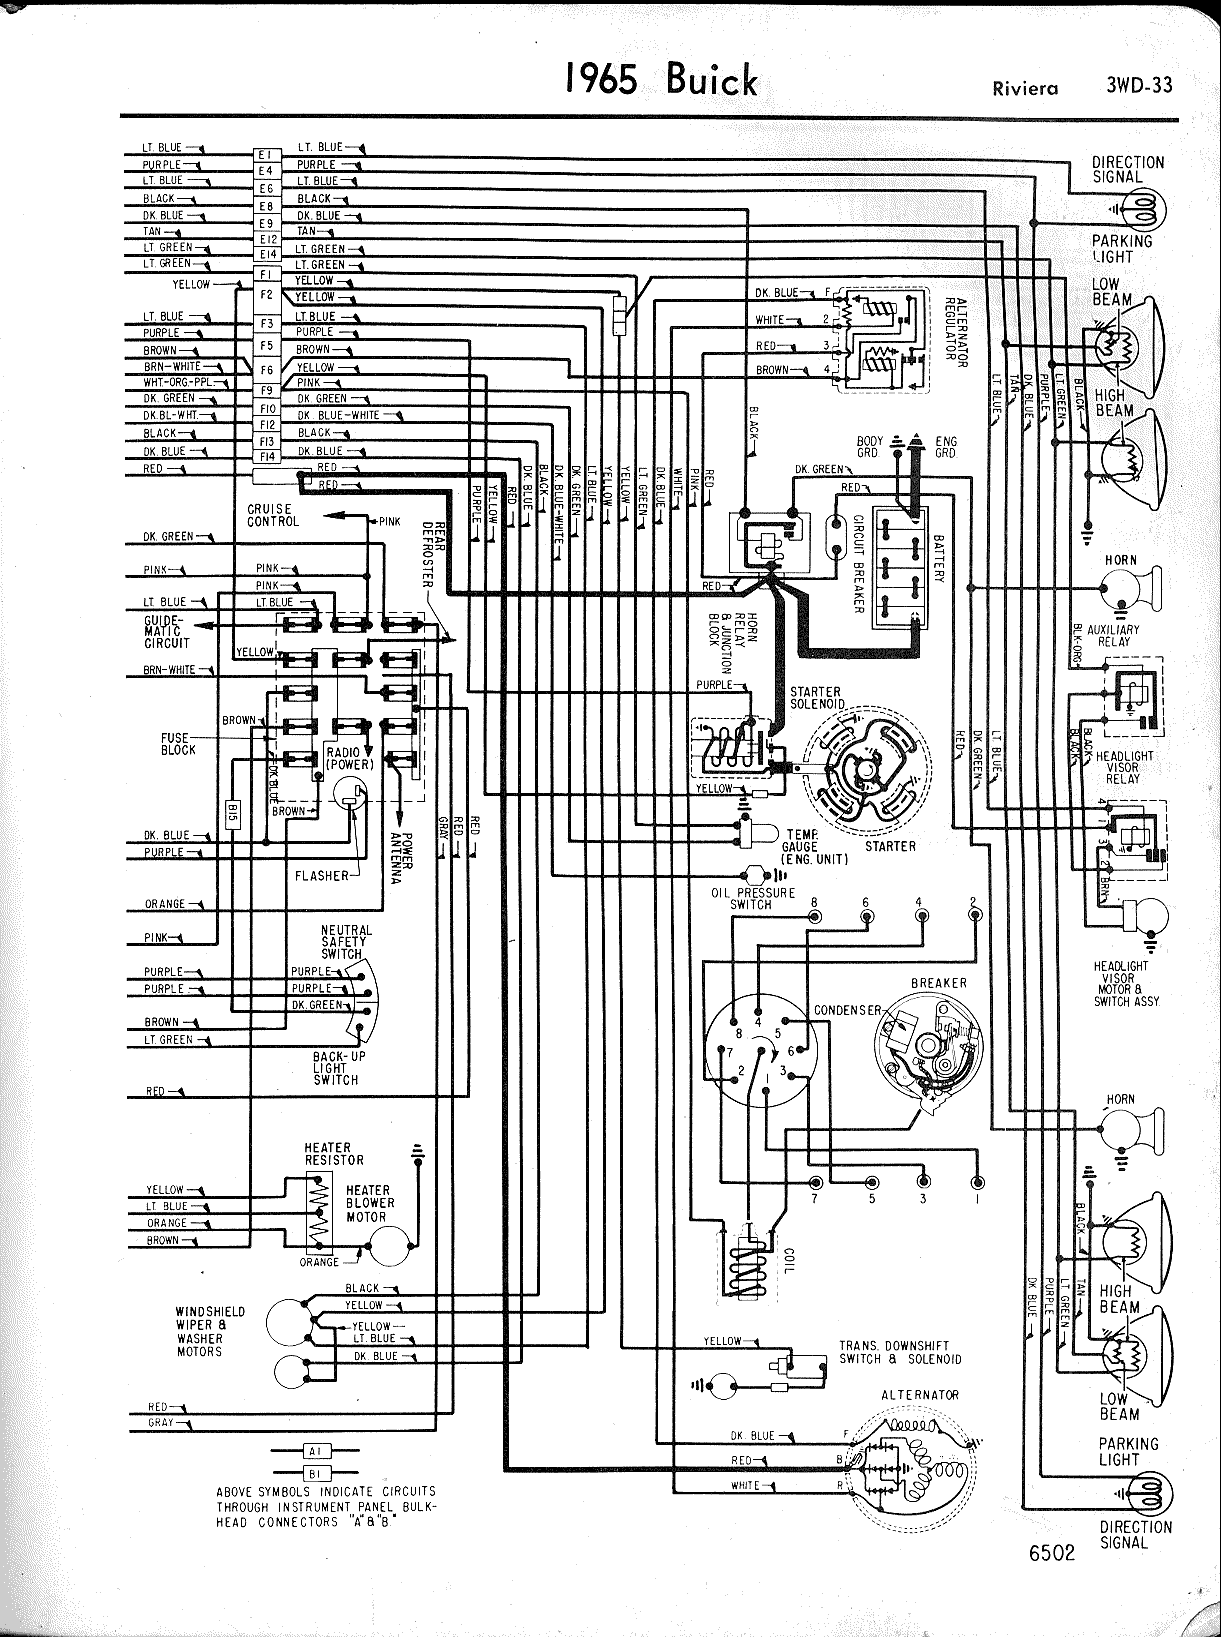 DIAGRAM] Wiring Diagrams 1967 Buick Skylark Free Download Diagram FULL  Version HD Quality Download Diagram - LOSH-DIAGRAM.EXPERTSUNIVERSITY.ITDiagram Database - Expertsuniversity.it